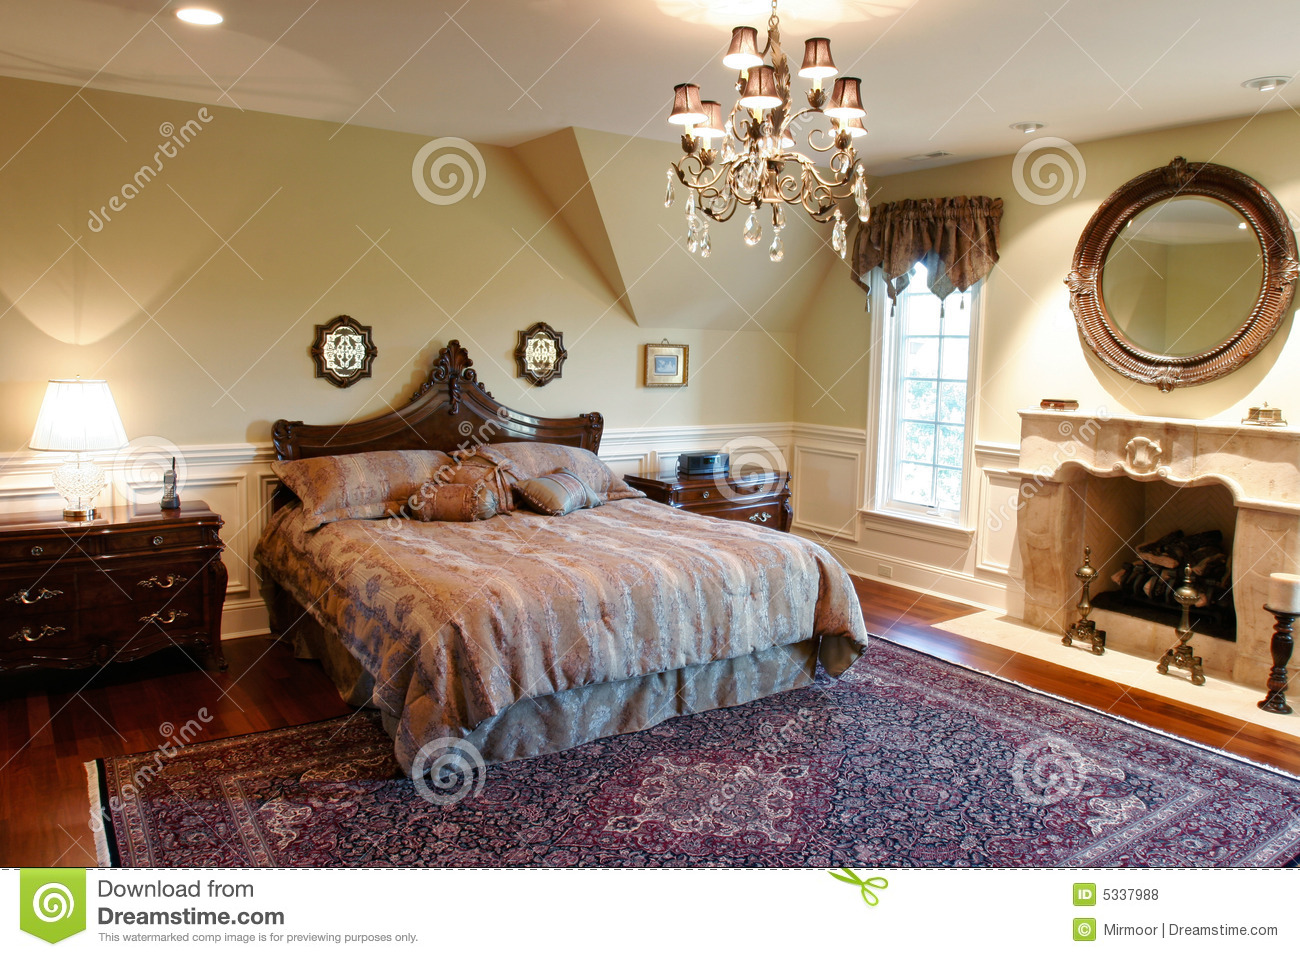 https://thumbs.dreamstime.com/z/camera-da-letto-di-lusso-5337988.jpg